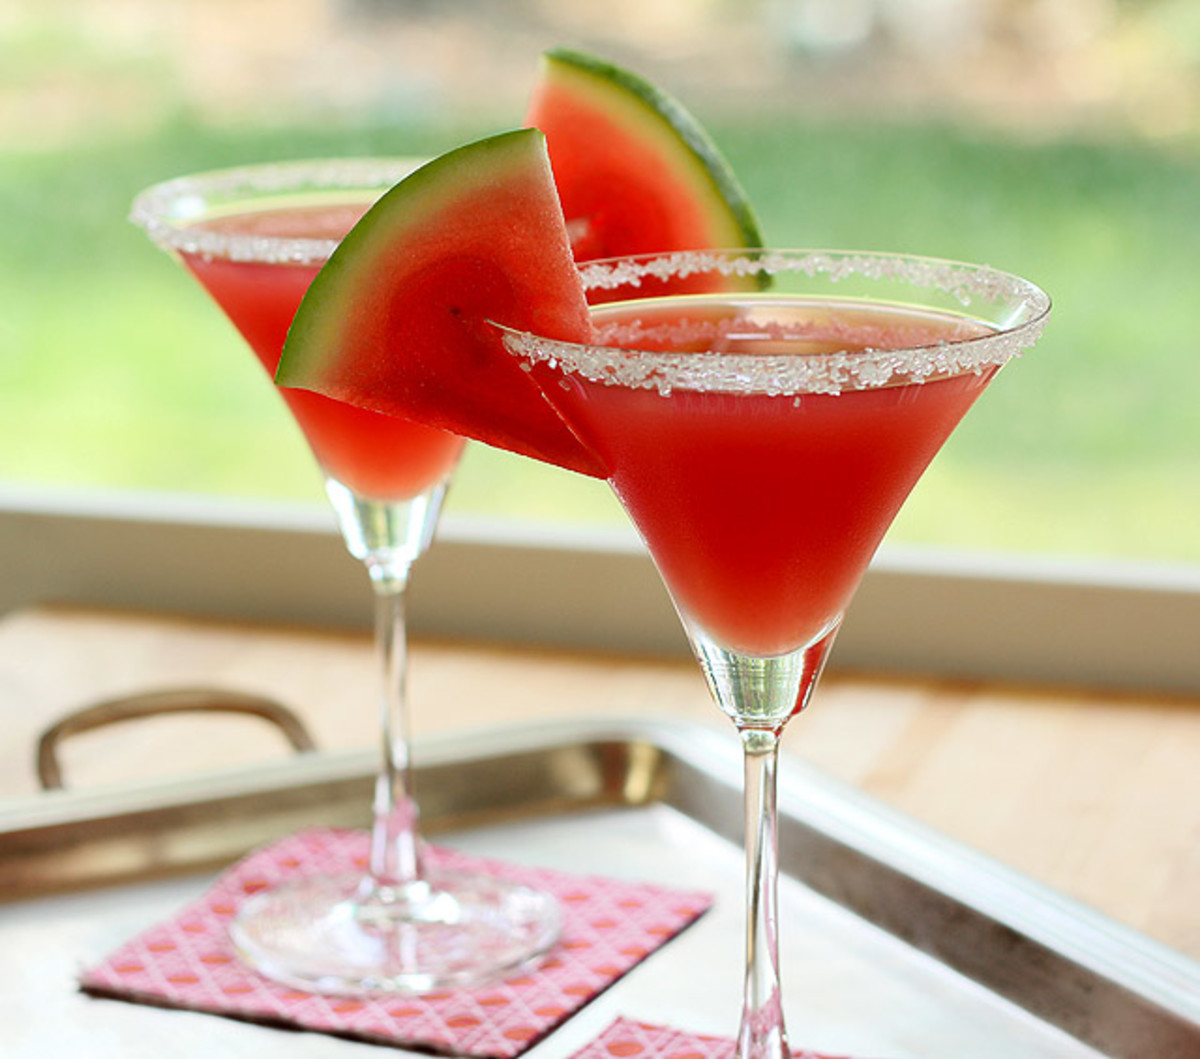 watermelon martini - might as well. Drink up!